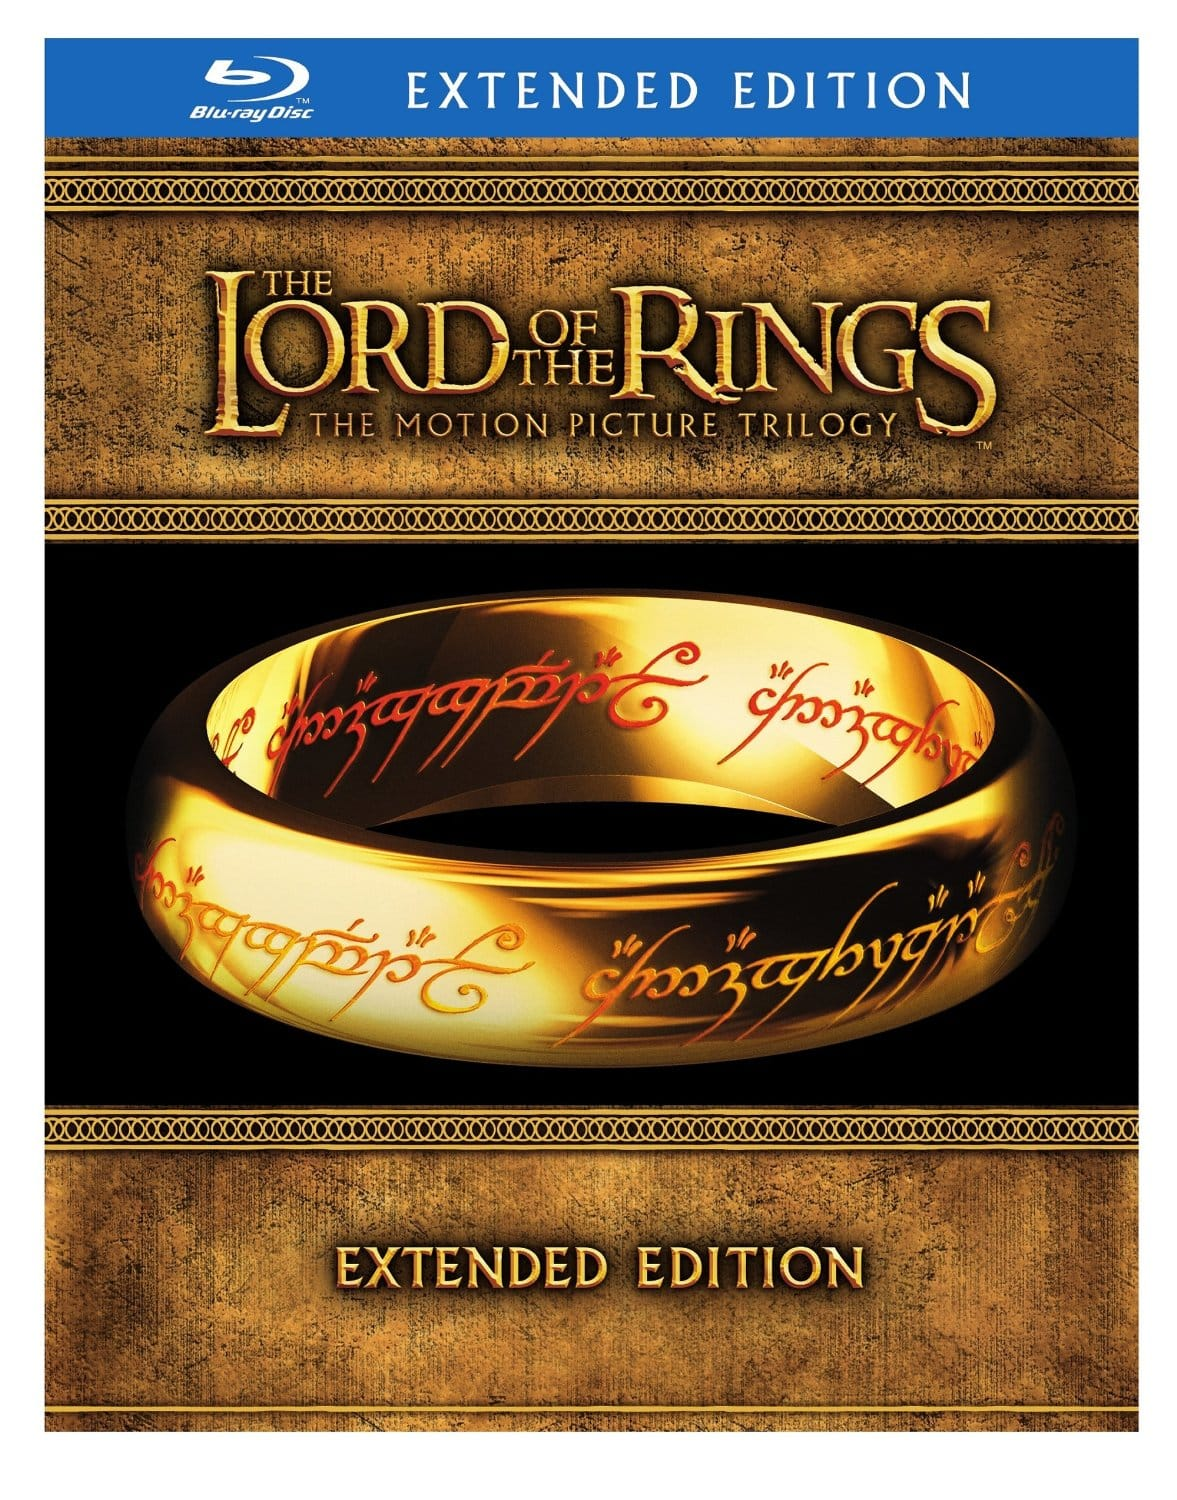 The Lord of the Rings: The Motion Picture Trilogy Extended Editions Blu-ray $28 @ amazon fs w/ prime